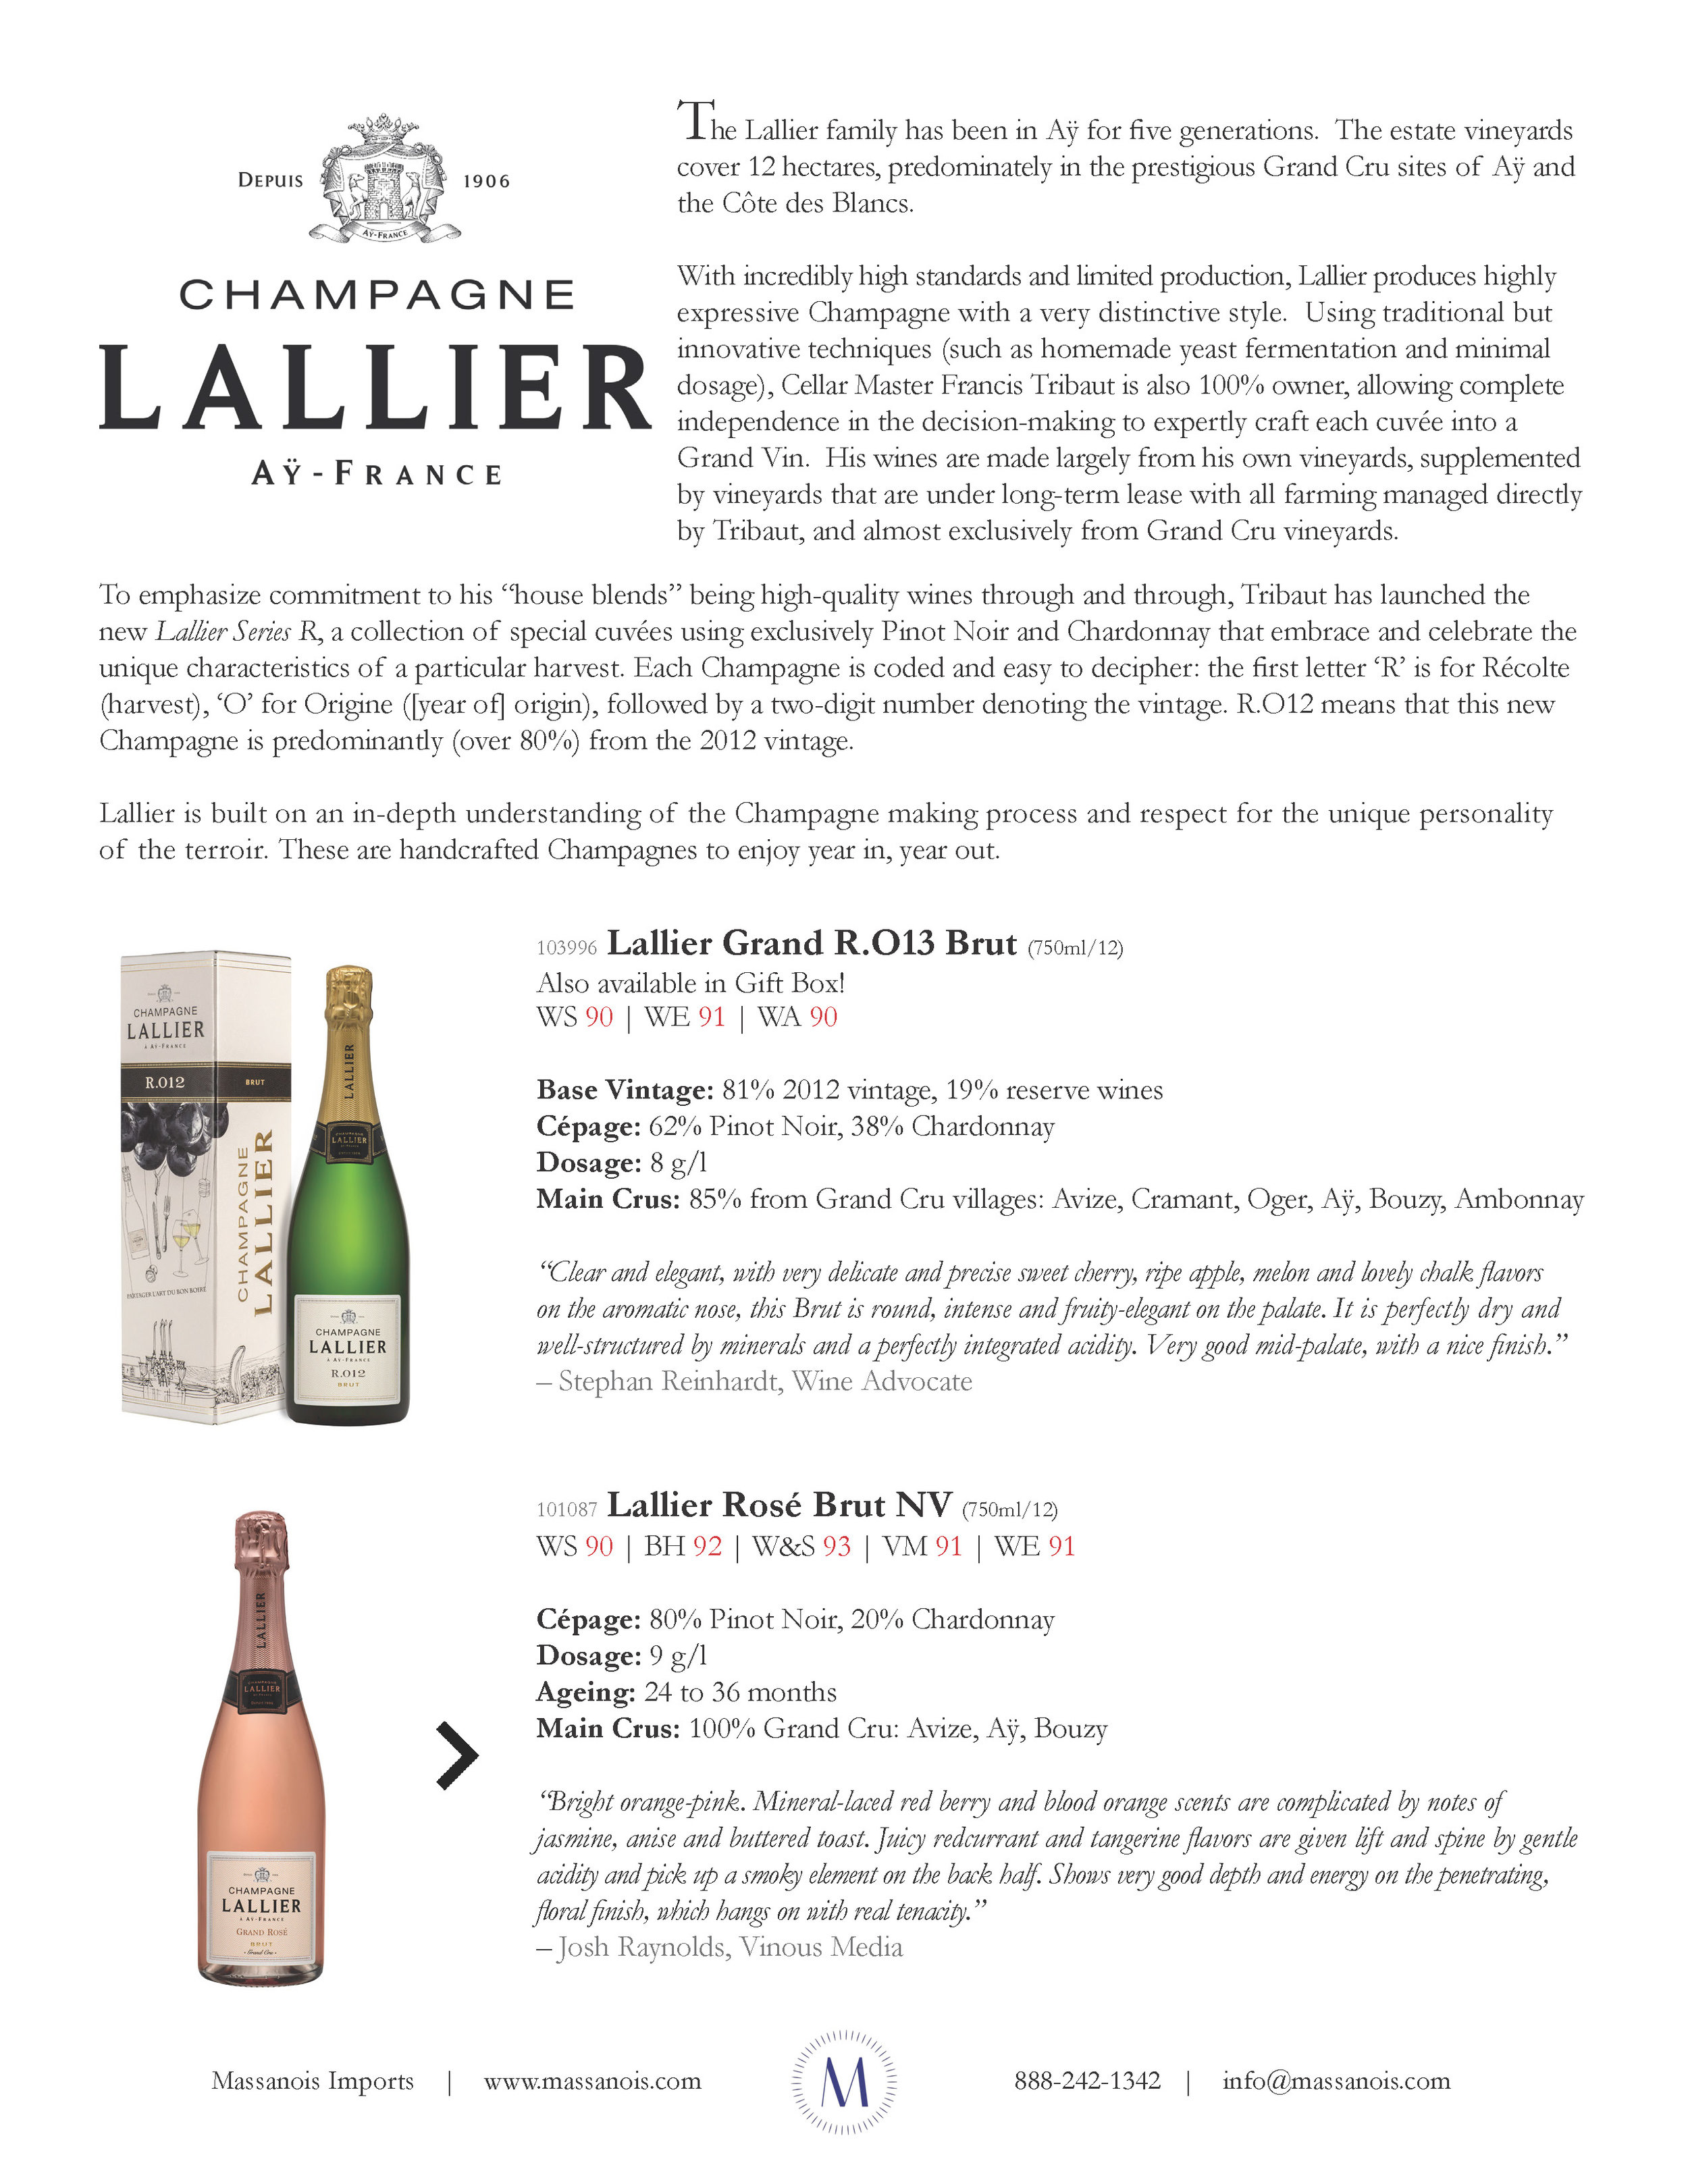 Lallier Sell Sheet 2018_Page_1.jpg